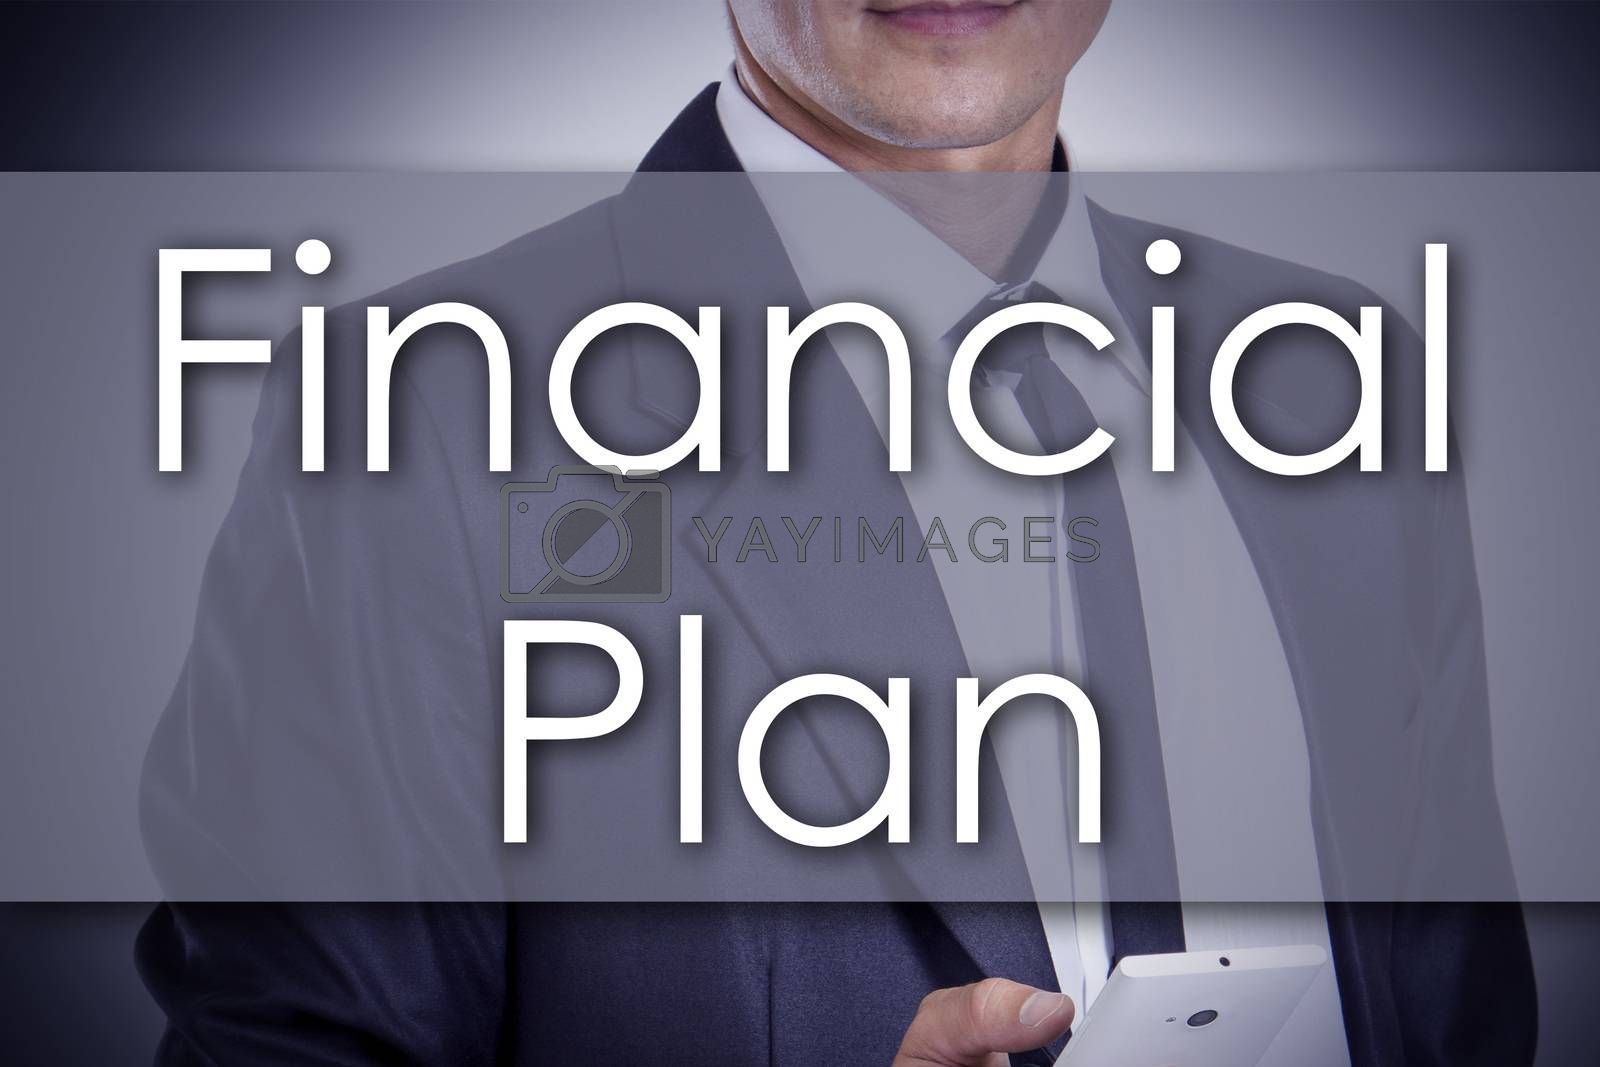 Financial Plan - Young businessman with text - business concept by zsirosistvan